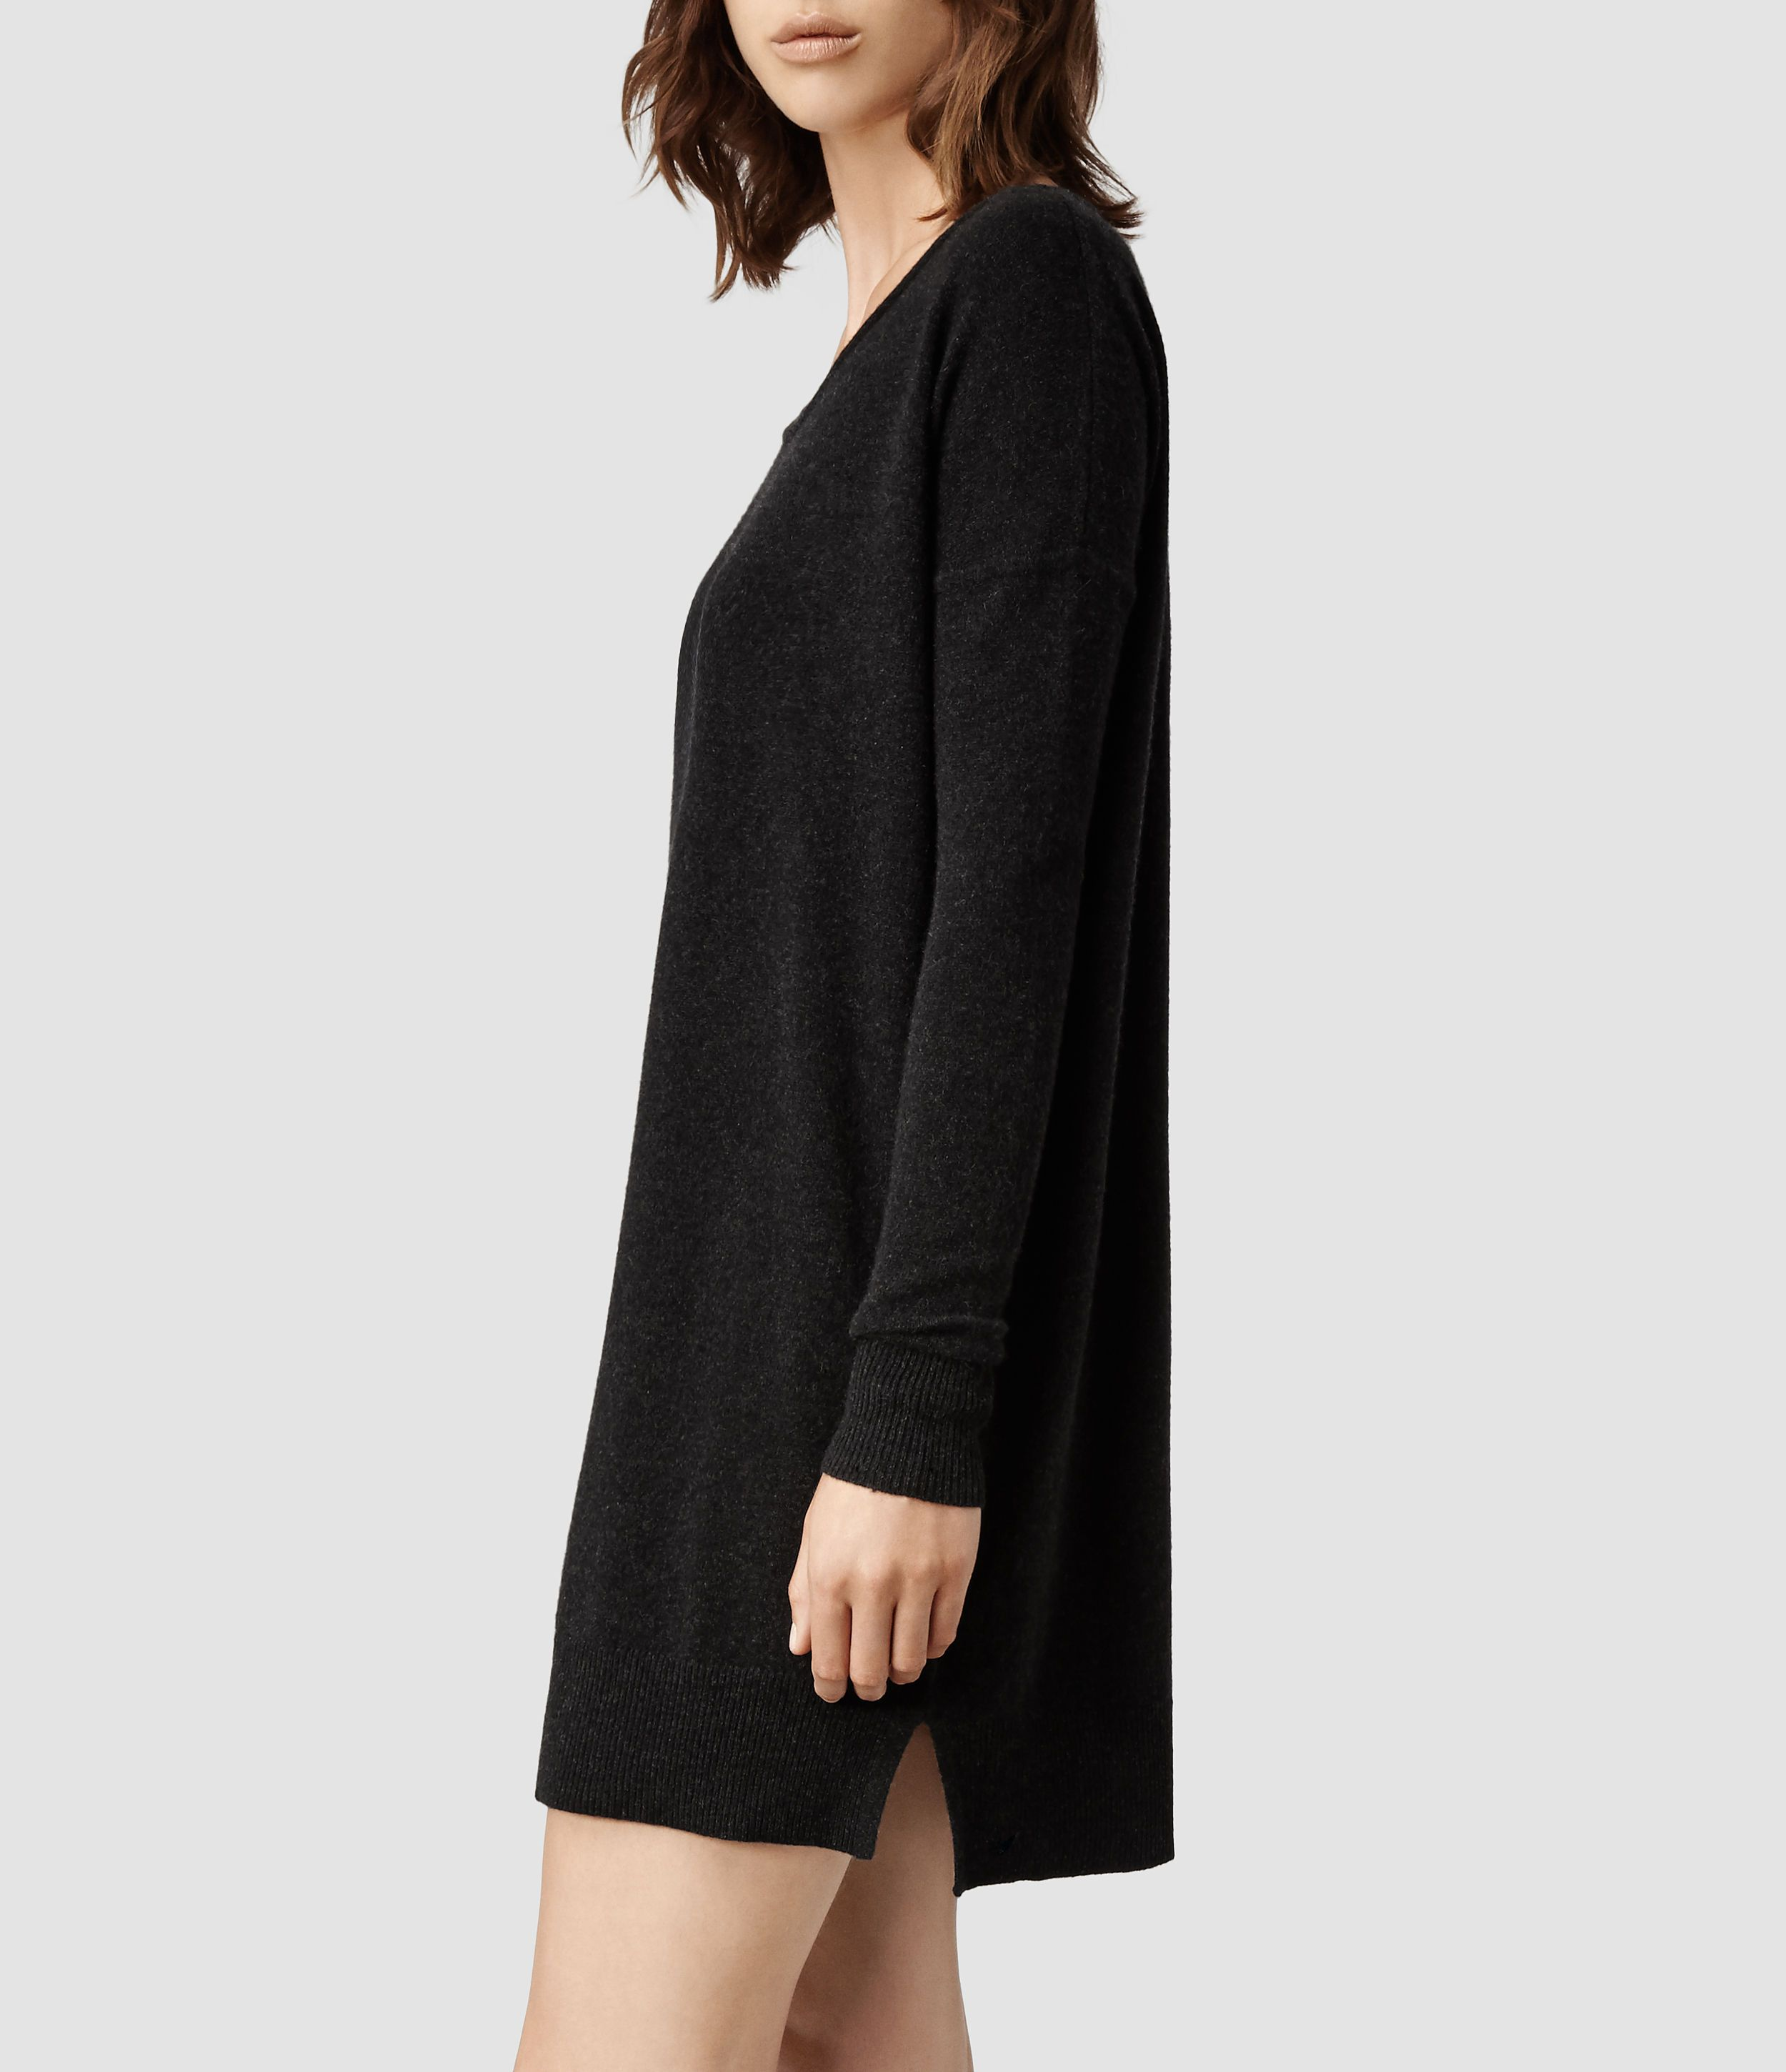 Allsaints Char Cashmere Jumper Dress in Black | My Style ...